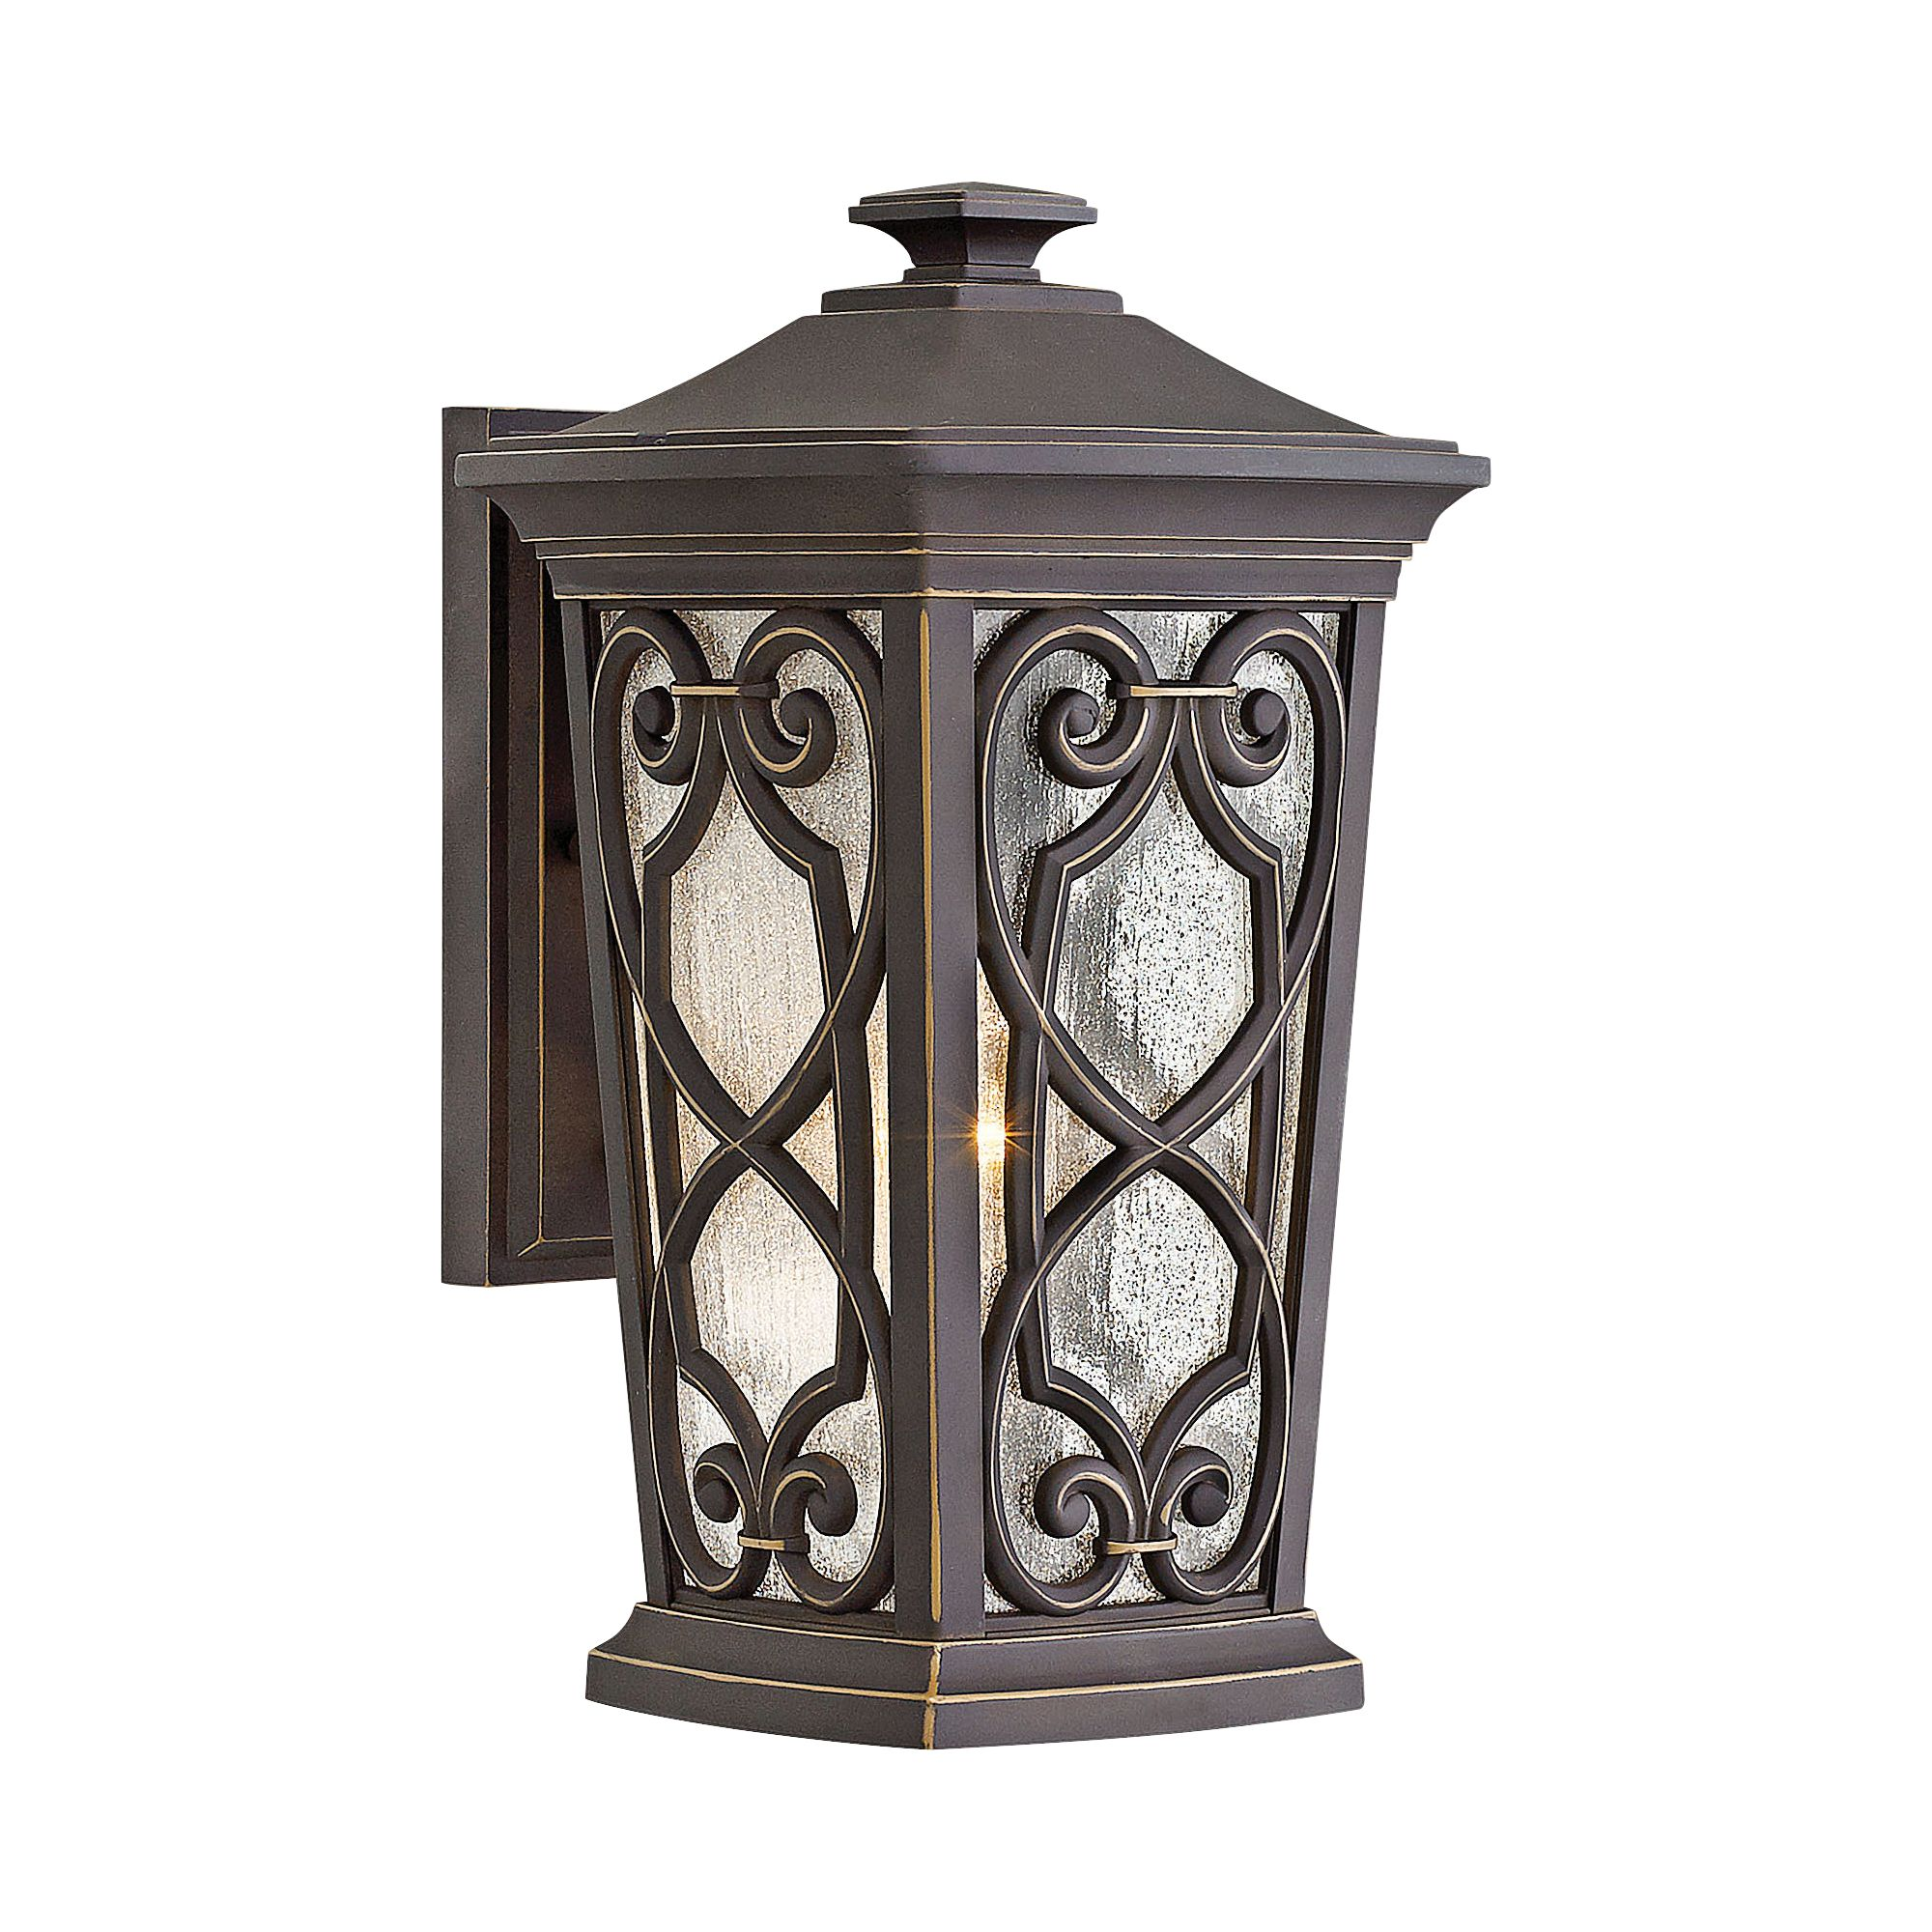 "Hinkley Lighting 2274 Enzo Single Light 14-1/4"" High Outdoor Wall Sconce with Se"